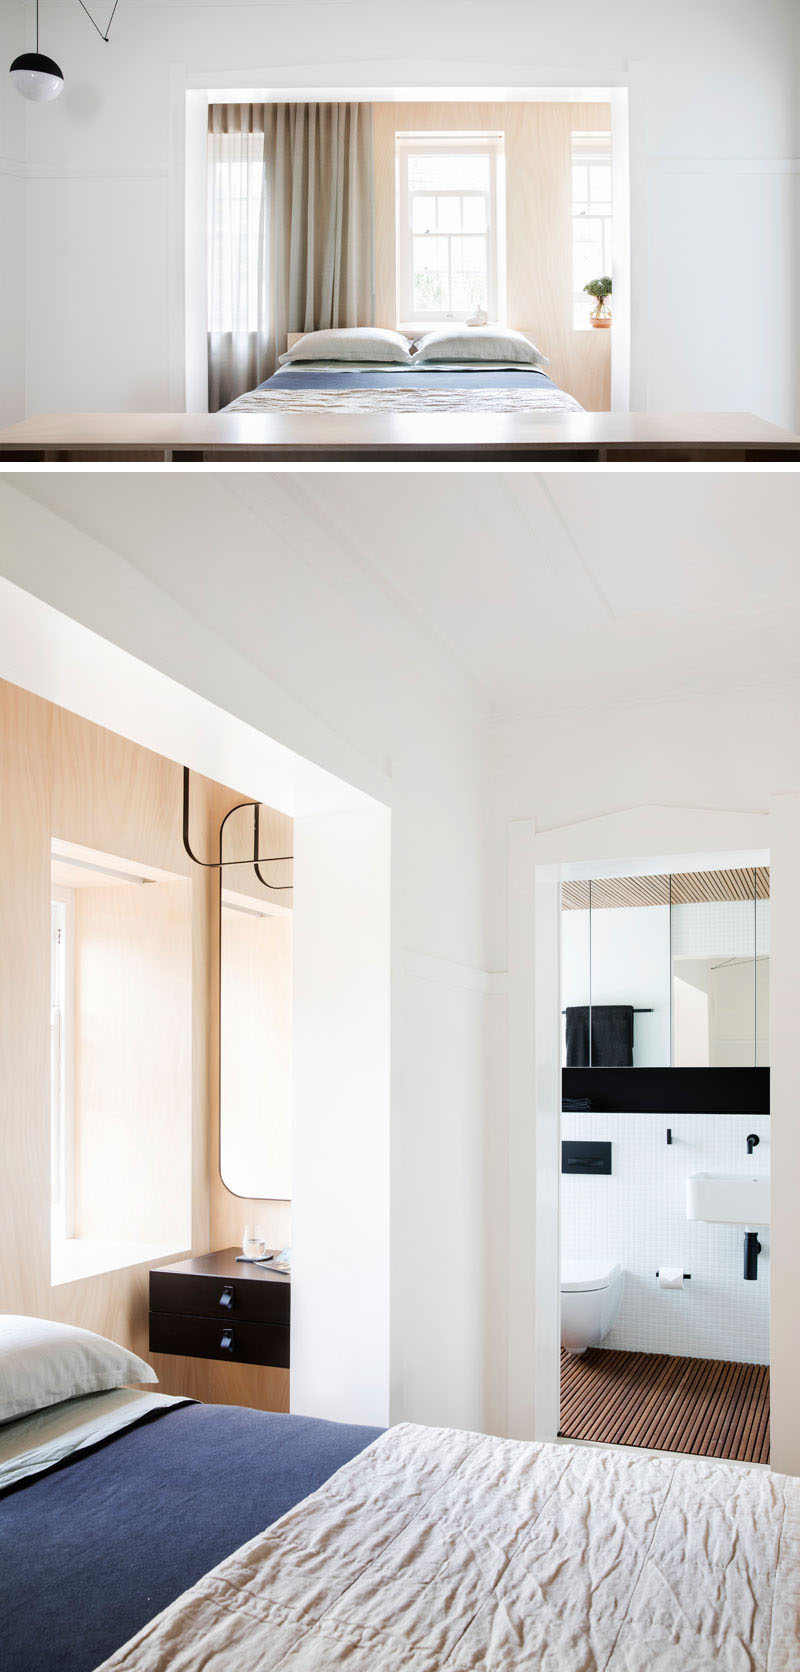 As this modern apartment has original Art Deco touches, some walls were left white and untouched, while others are made from a lime-washed plywood that adds a touch of warmth to the space.